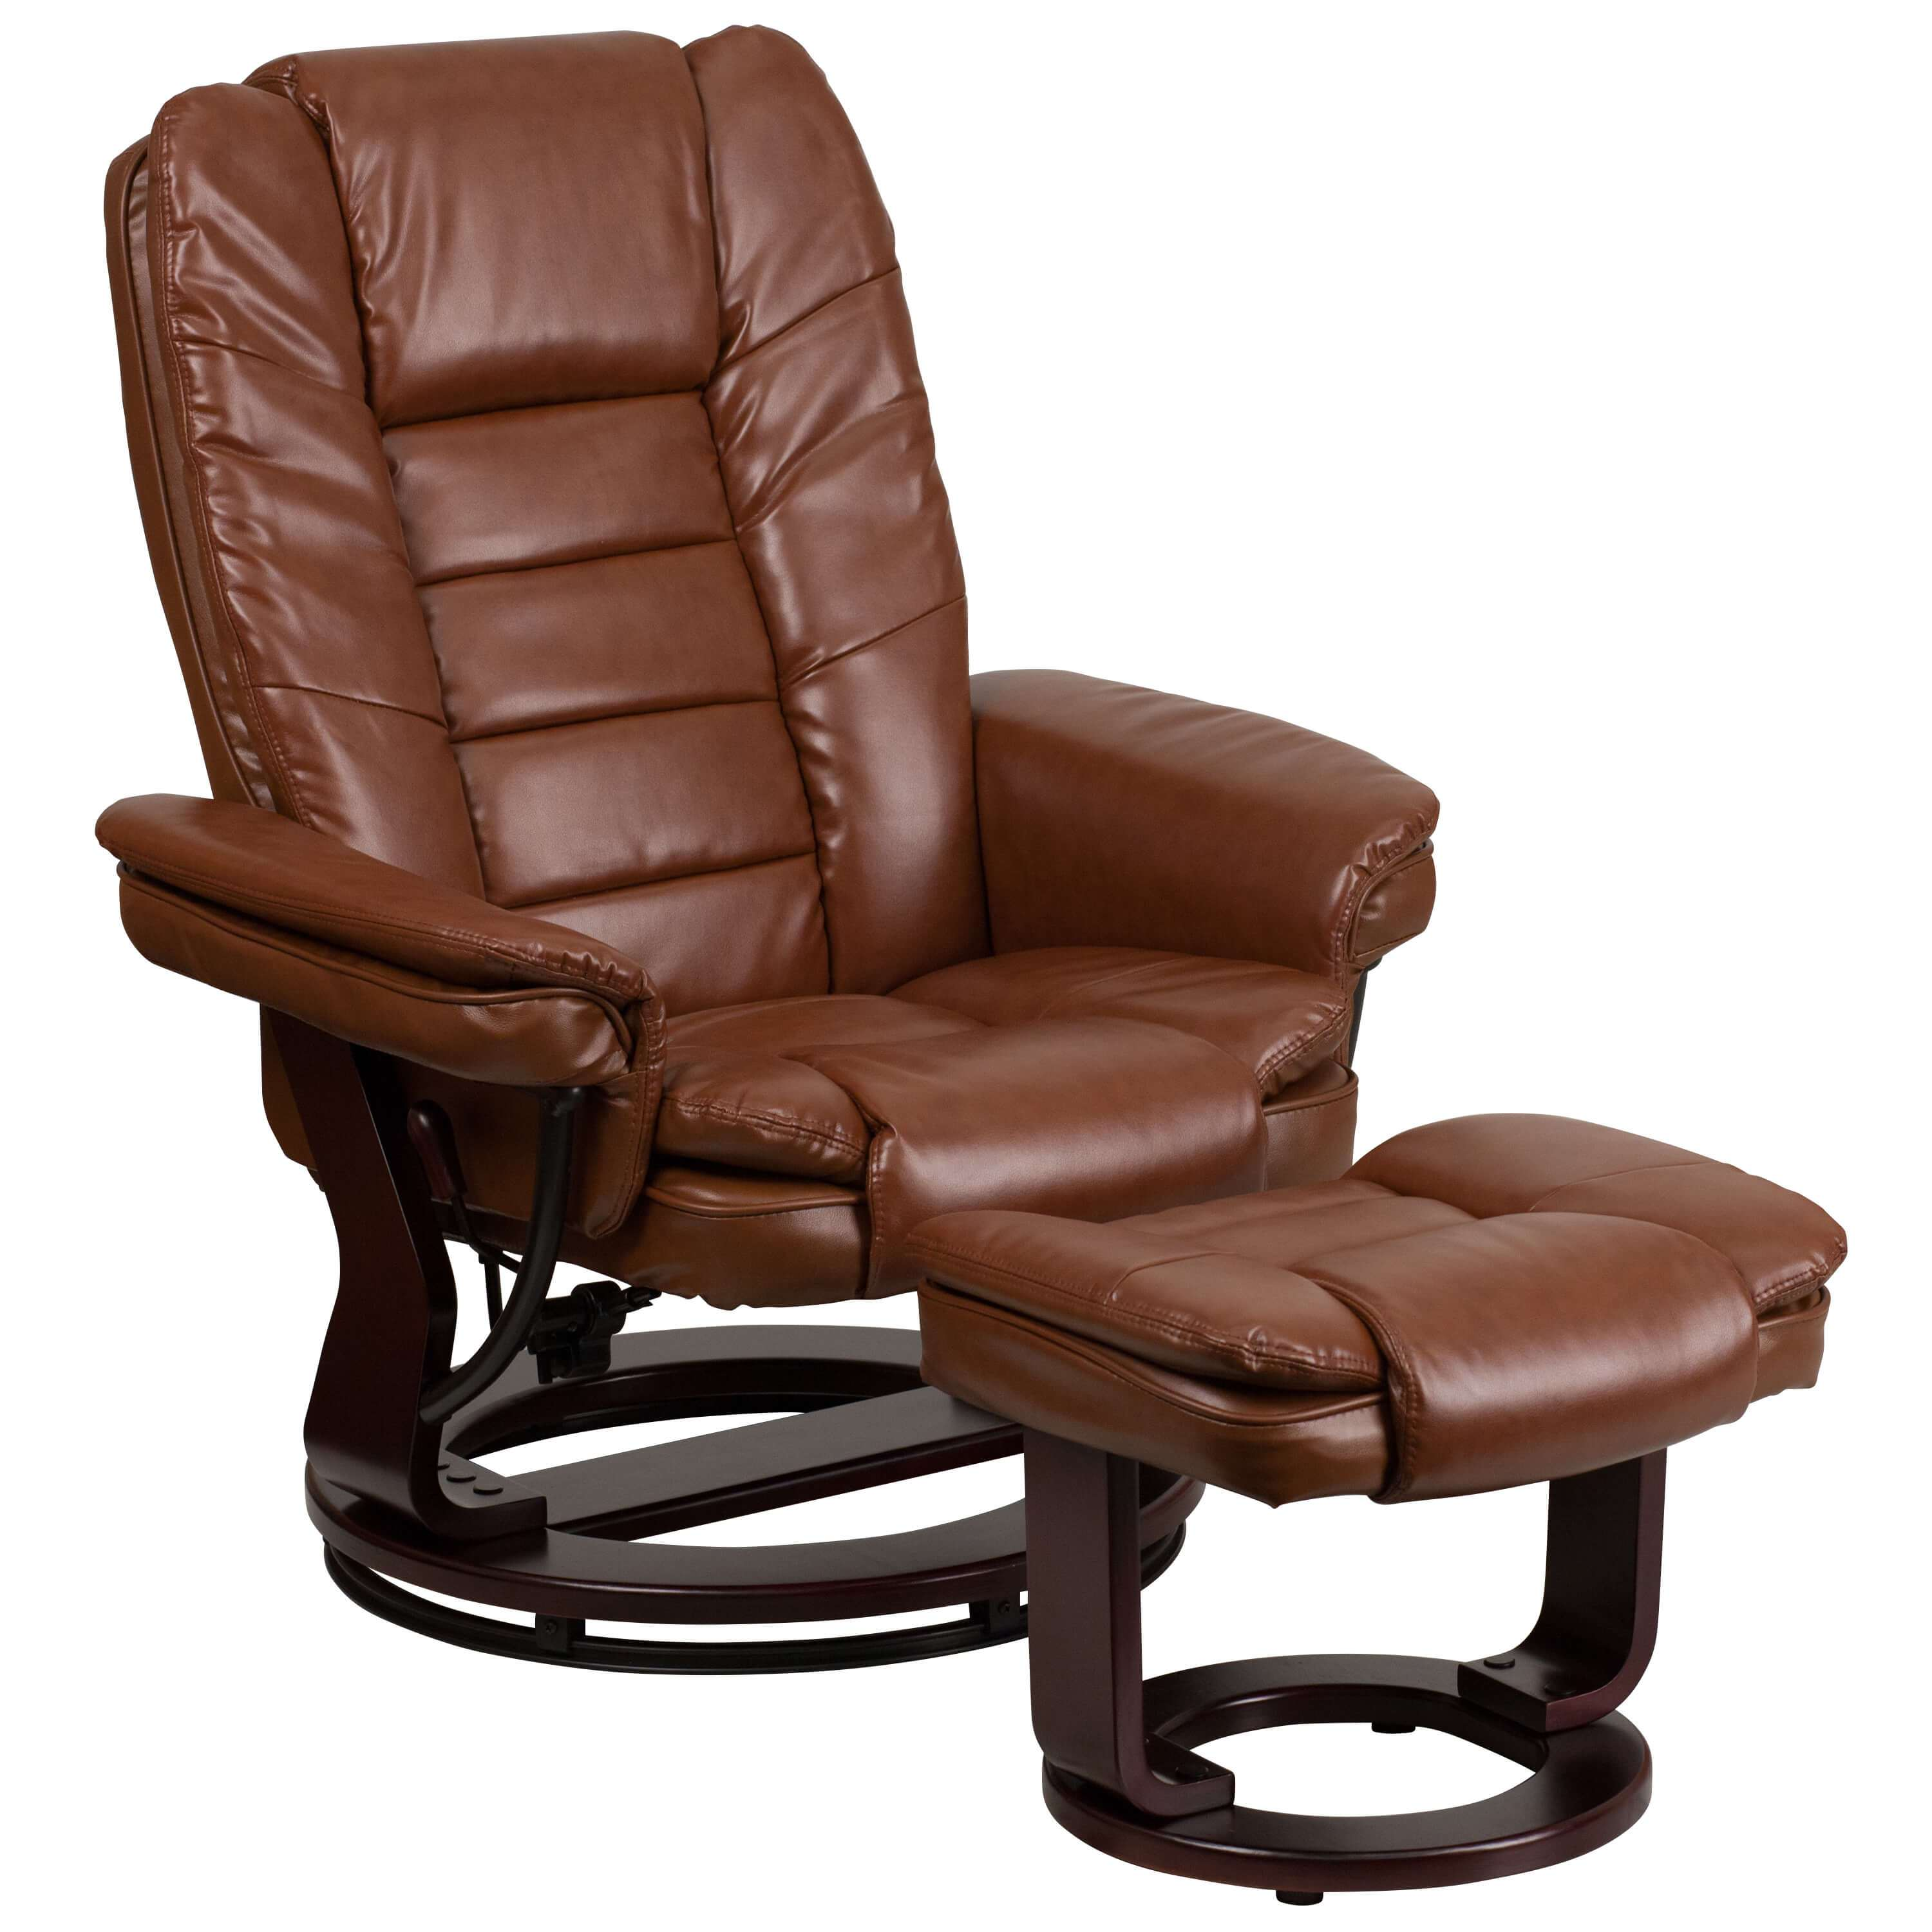 contemporary-recliners-contemporary-recliner-chair.jpg